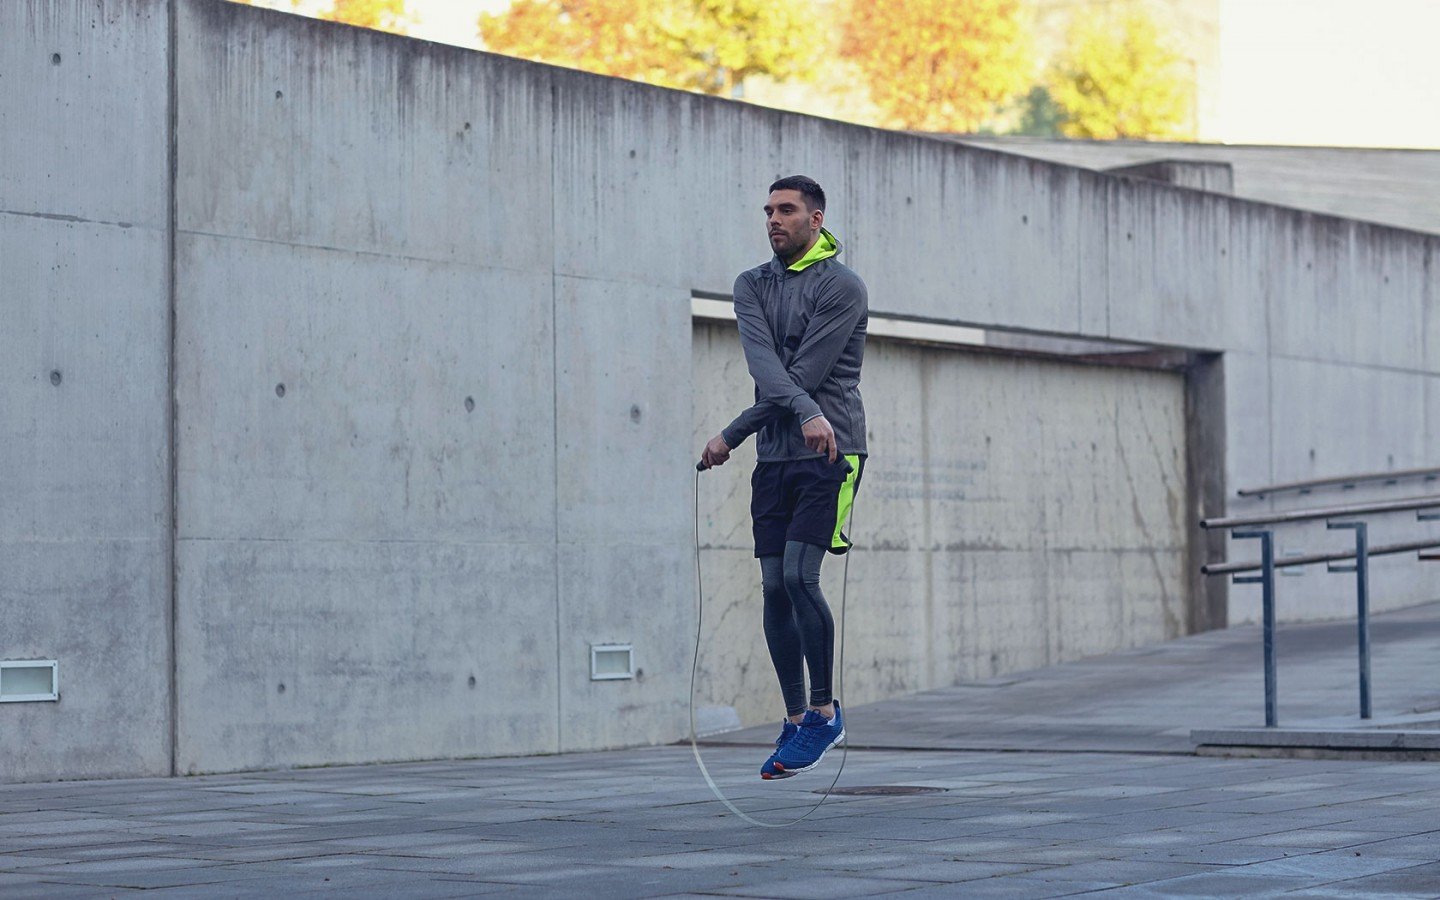 4 Jump Rope Tricks You've Seen In Movies